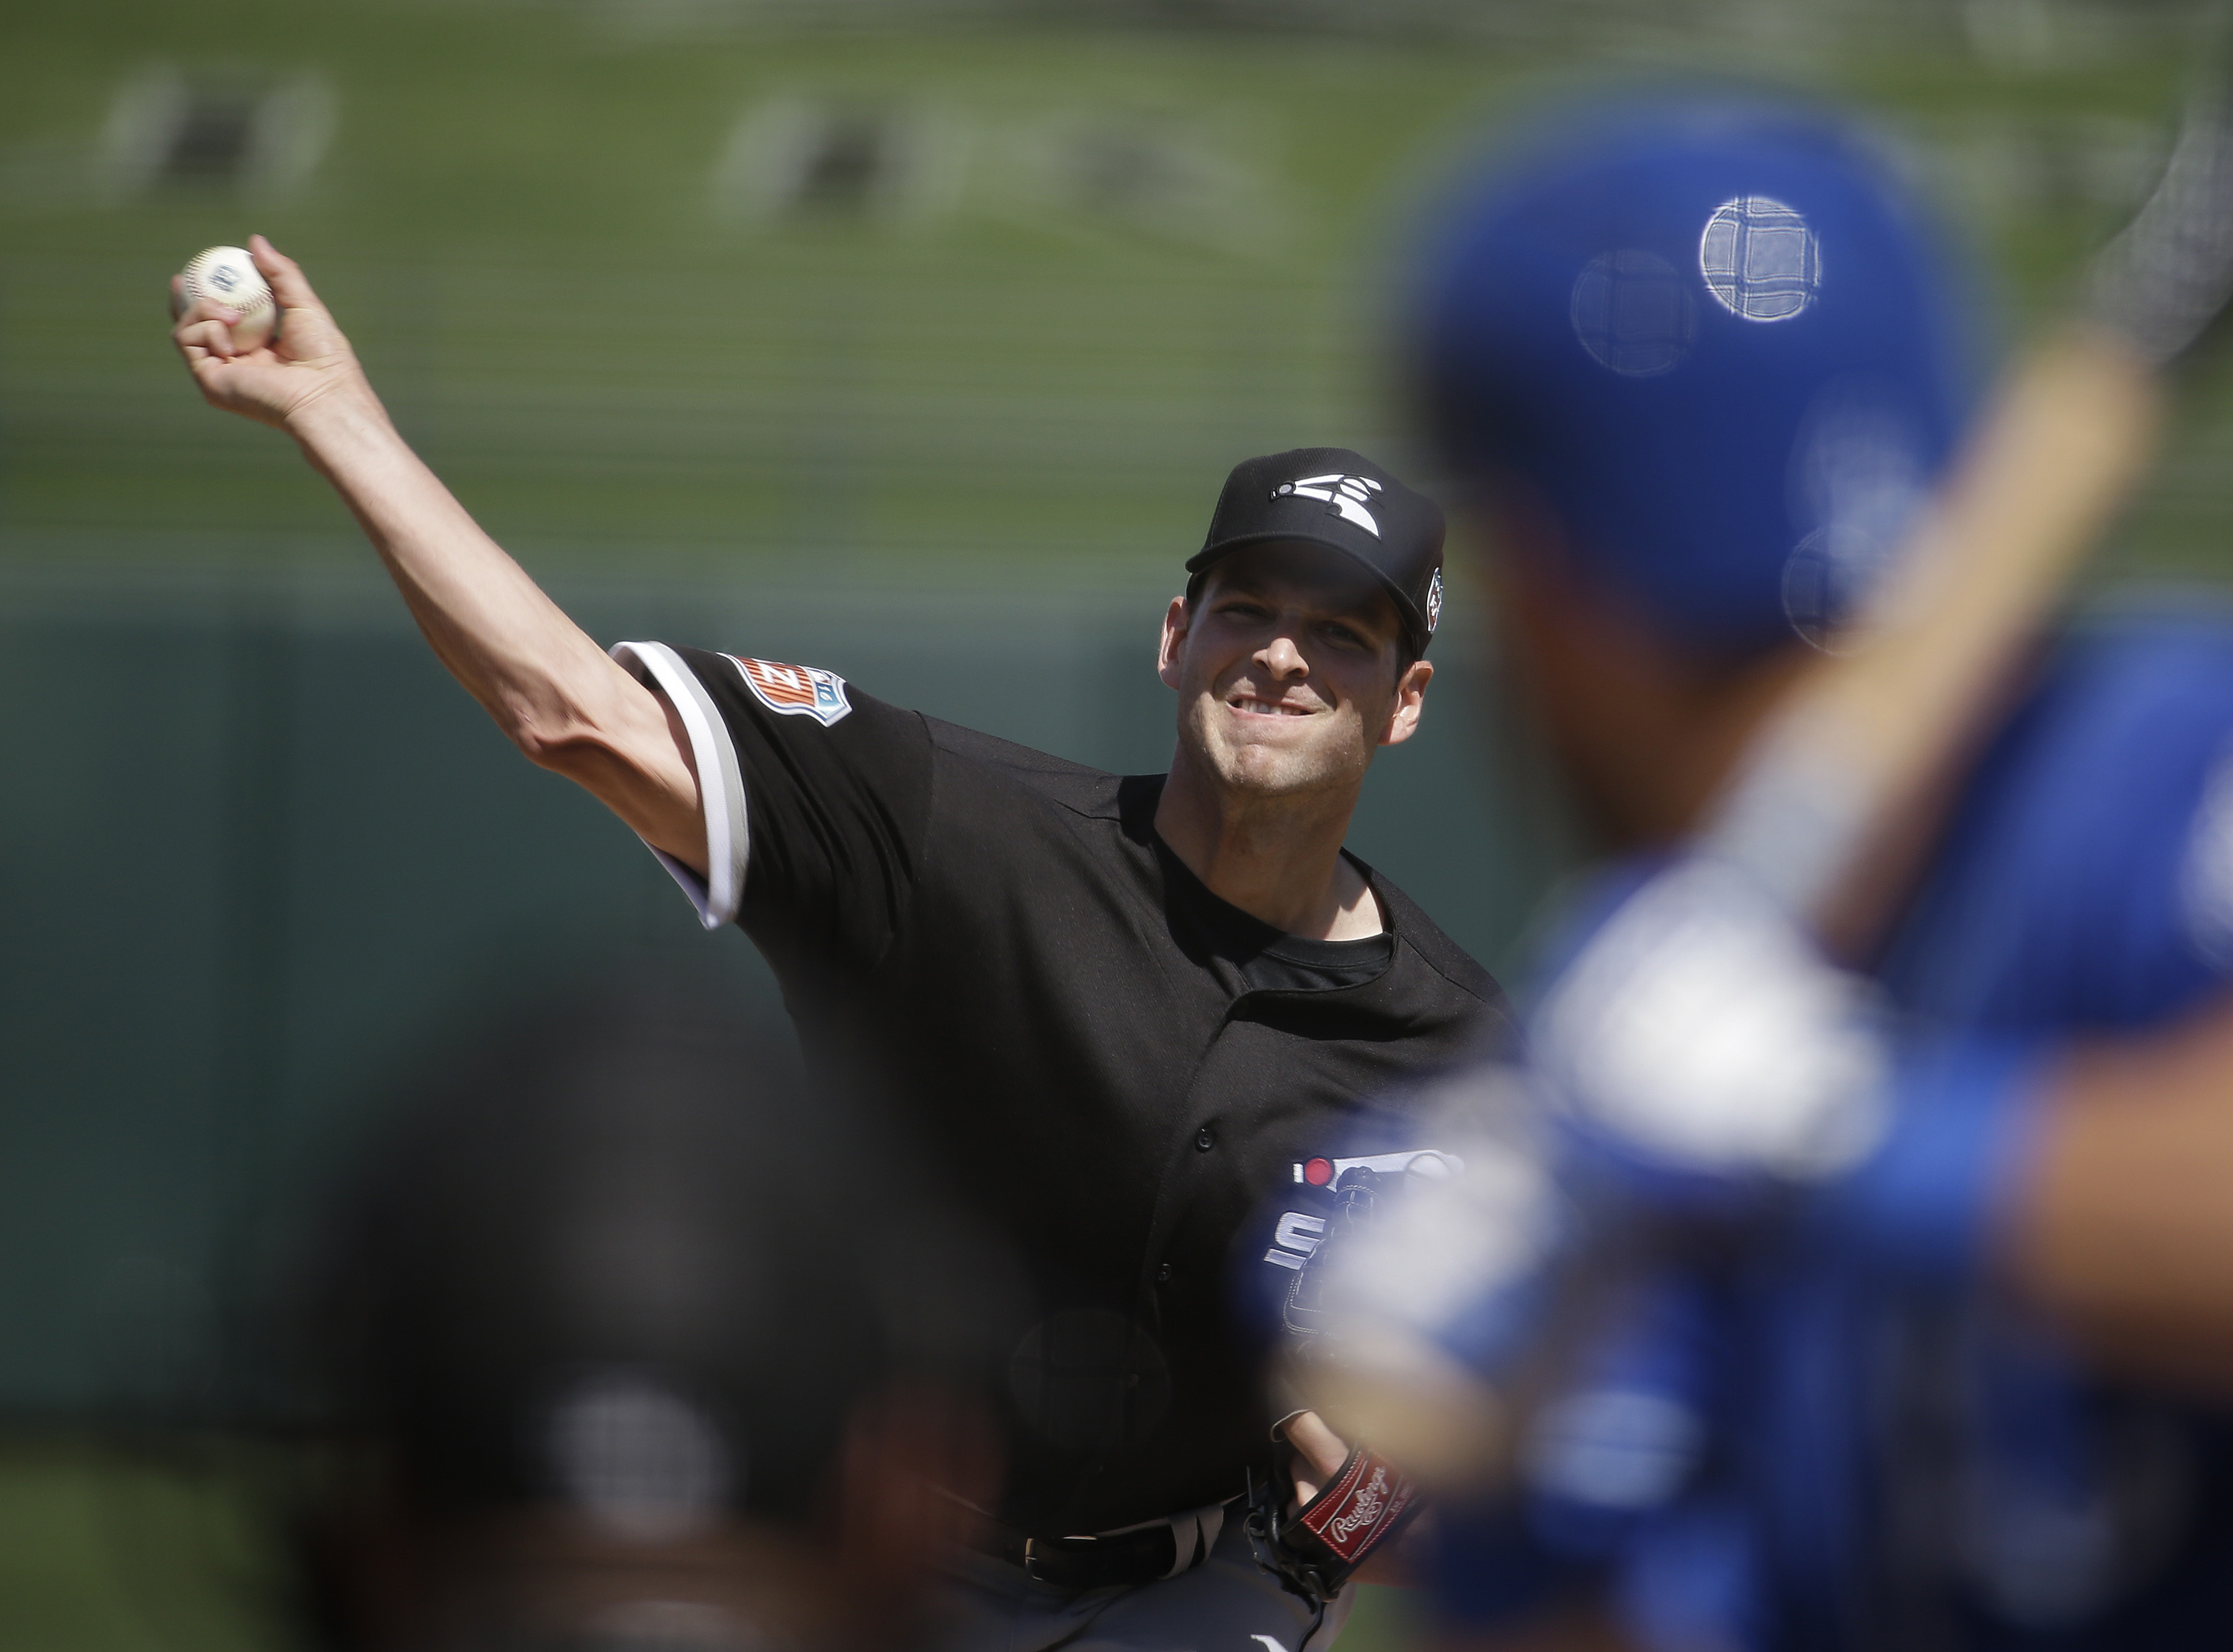 Chicago White Sox's Jacob Turner throws during the second inning of a spring training baseball game against the Kansas City Royals, Monday, March 14, 2016, in Surprise, Ariz. (AP Photo/Darron Cummings)